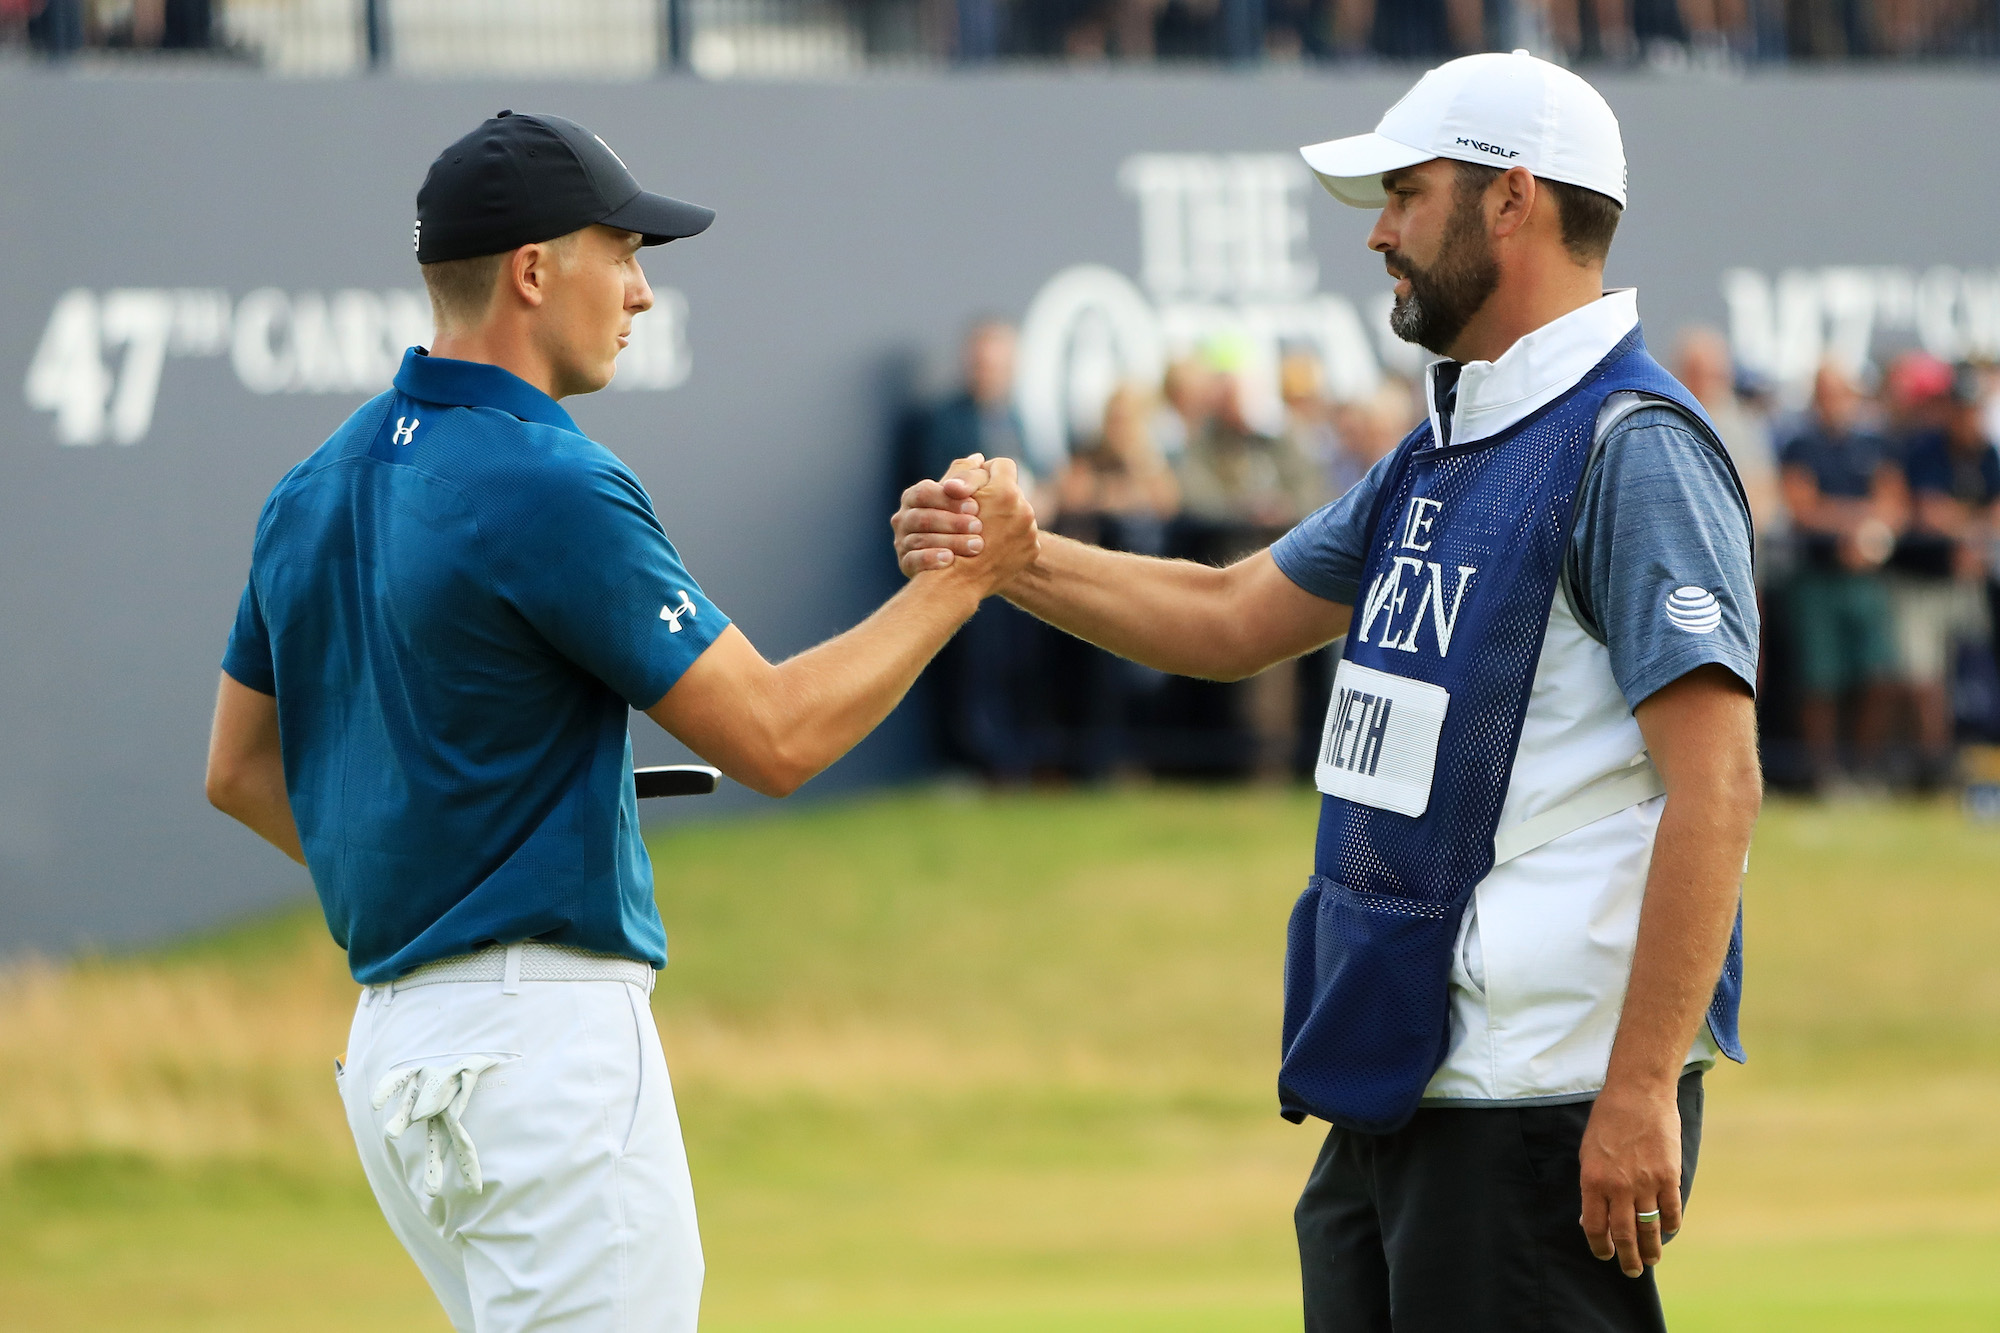 2018 Open Championship: Round 3 - Jordan and Michael Celebrate a Successful Moving Day at Carnoustie